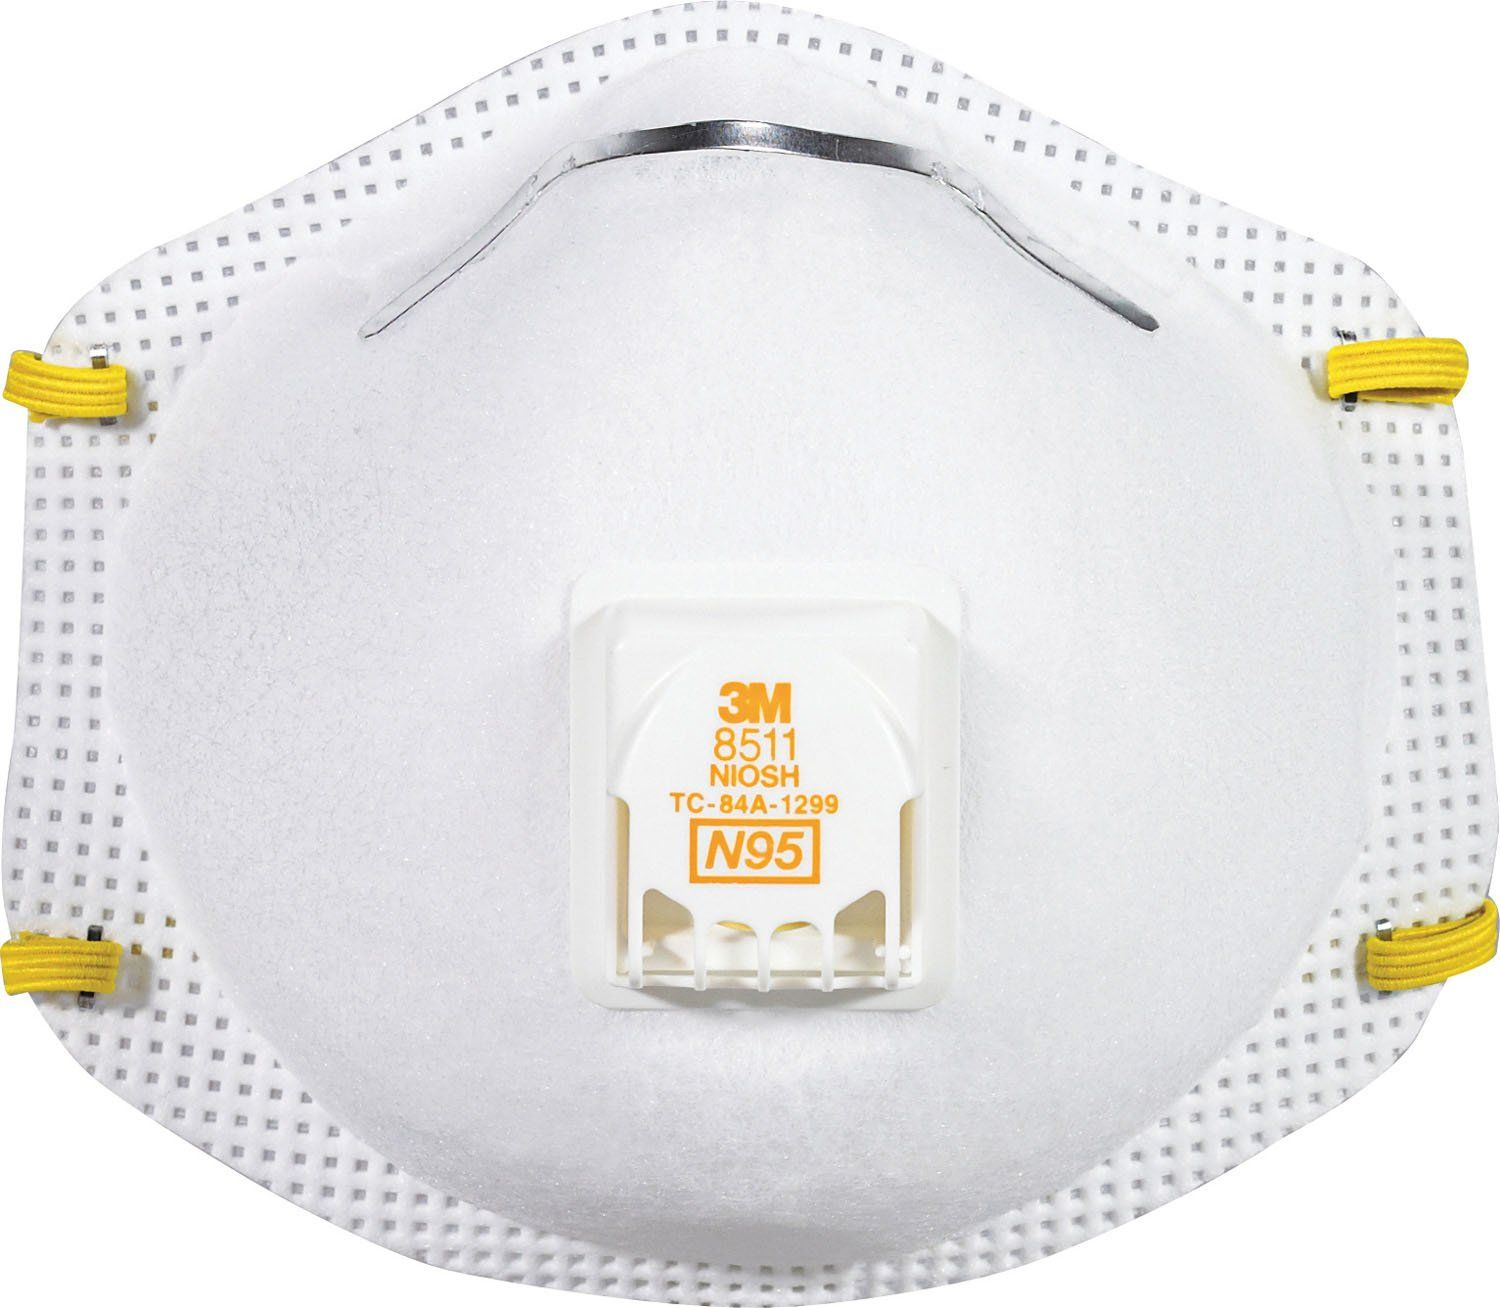 3m DParticulate Respirator Face Mask With Valve 10 Pack